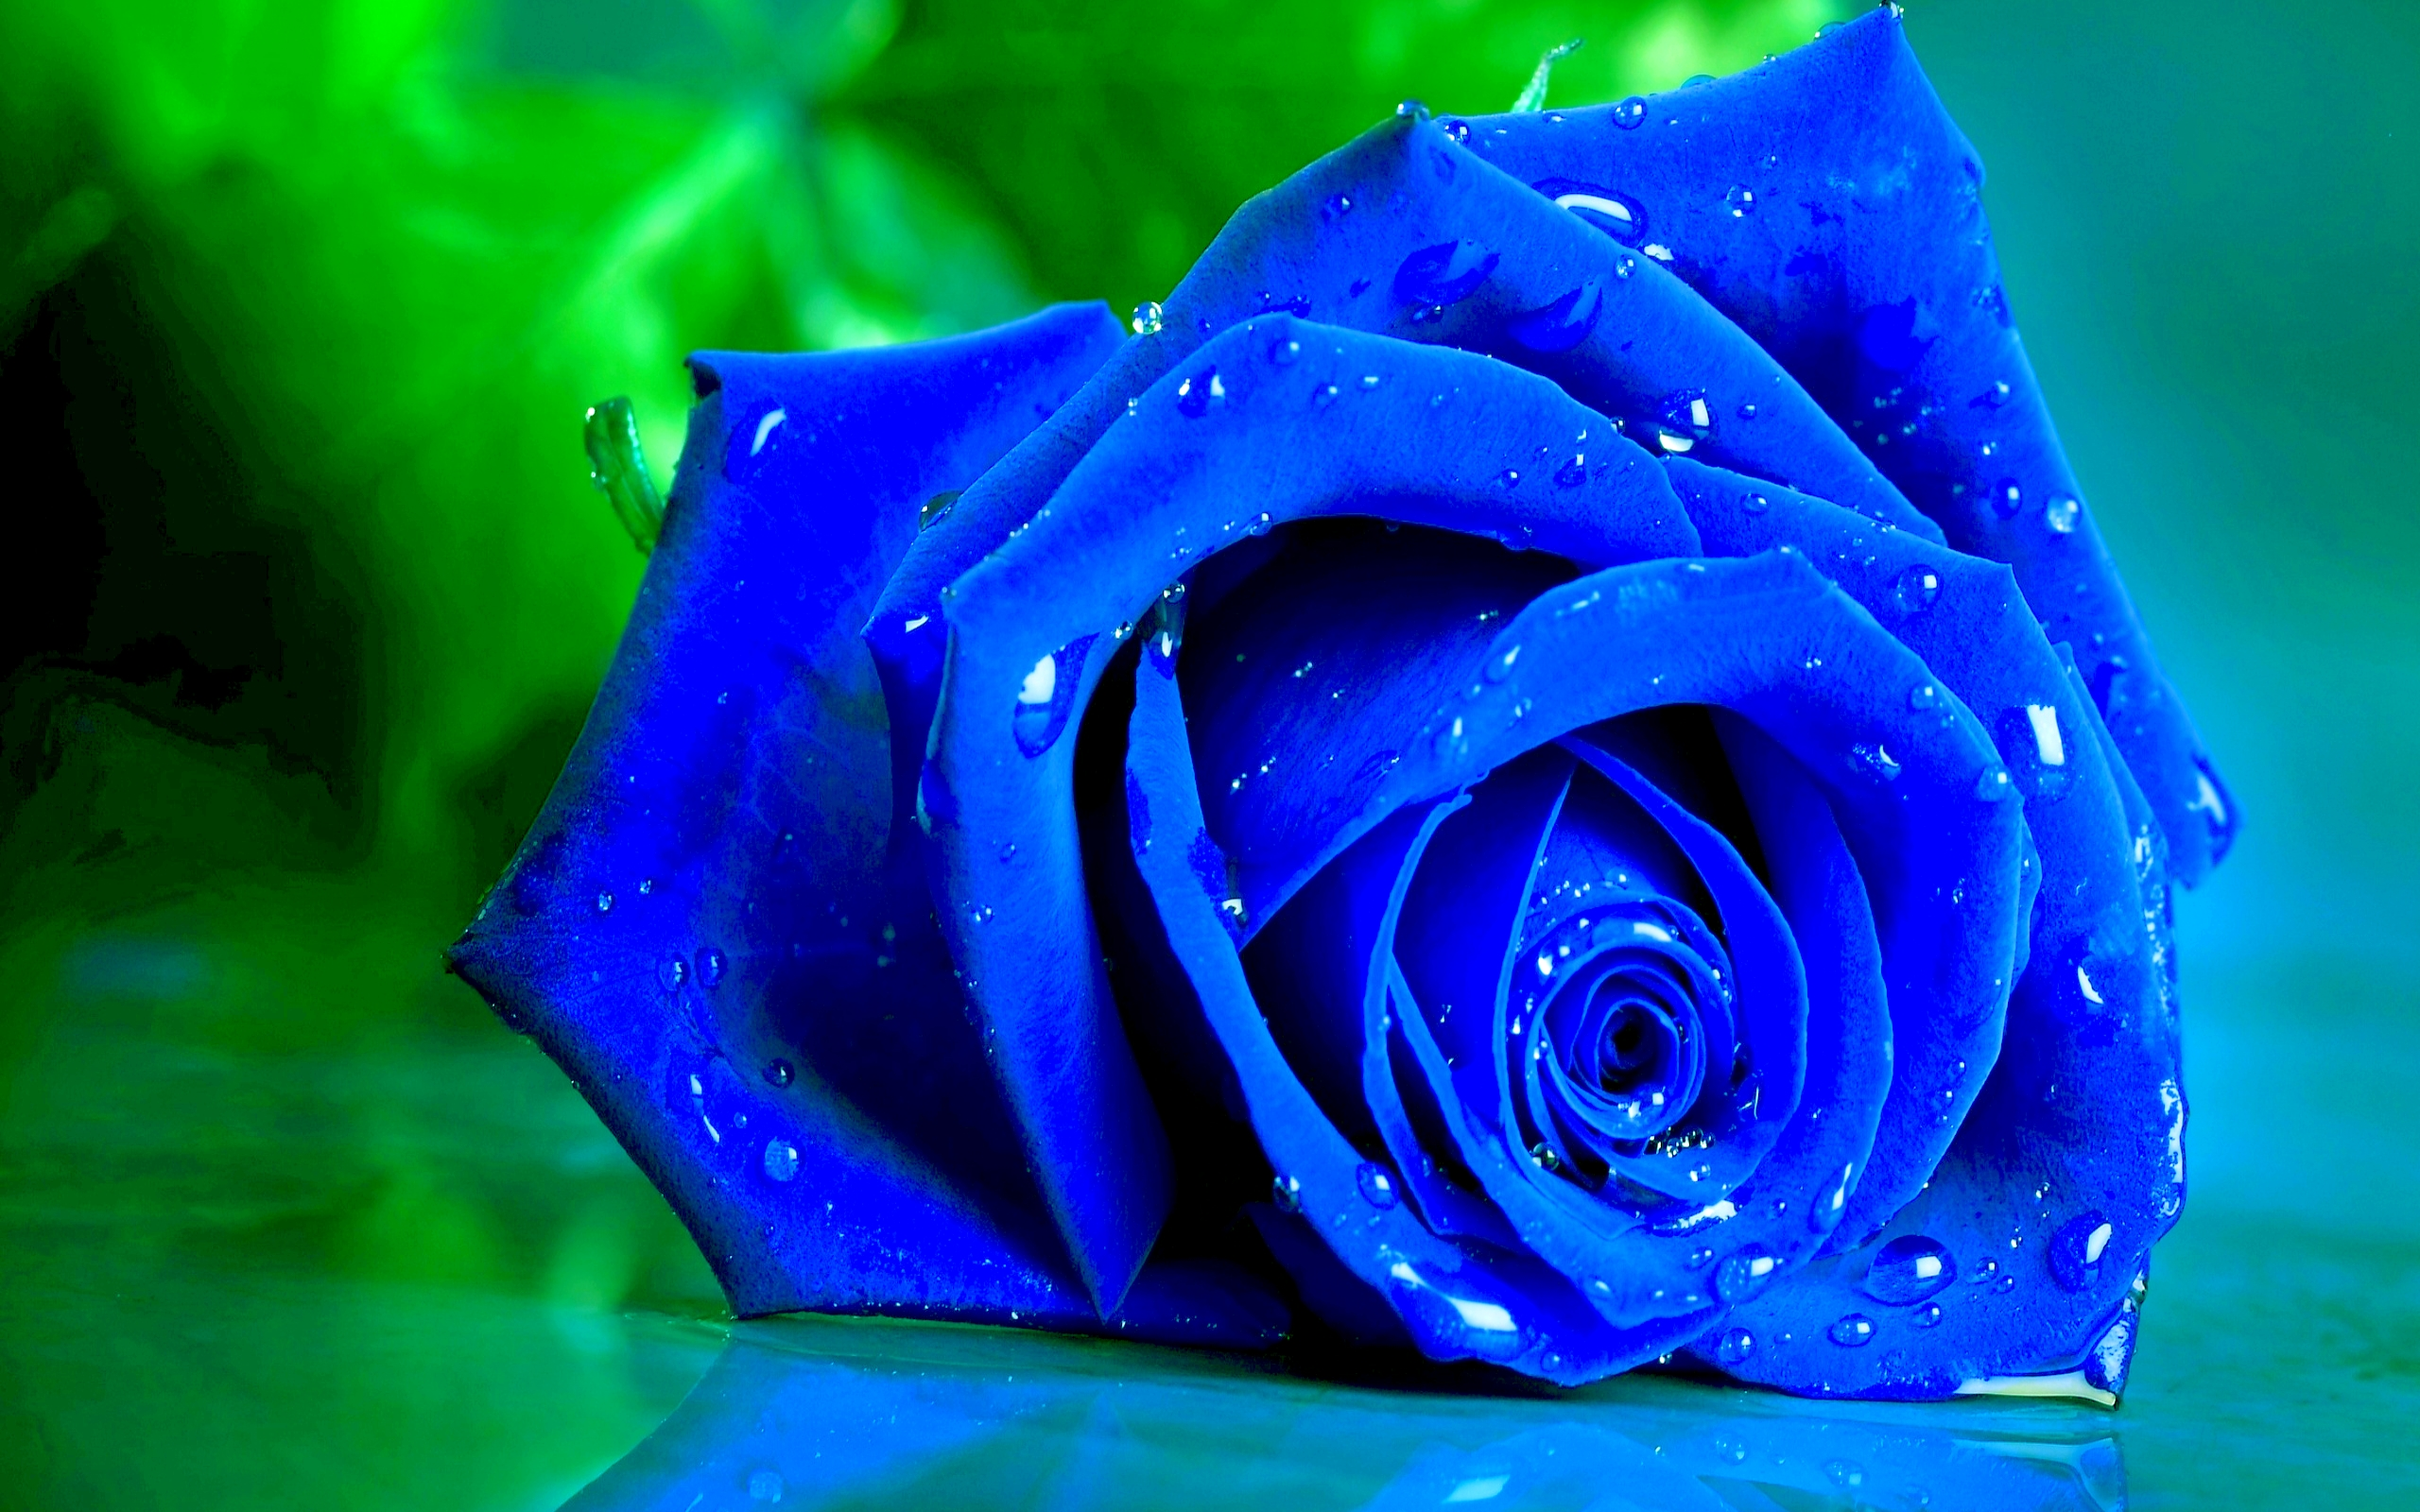 wet blue rose full hd wallpaper and background image | 2560x1600